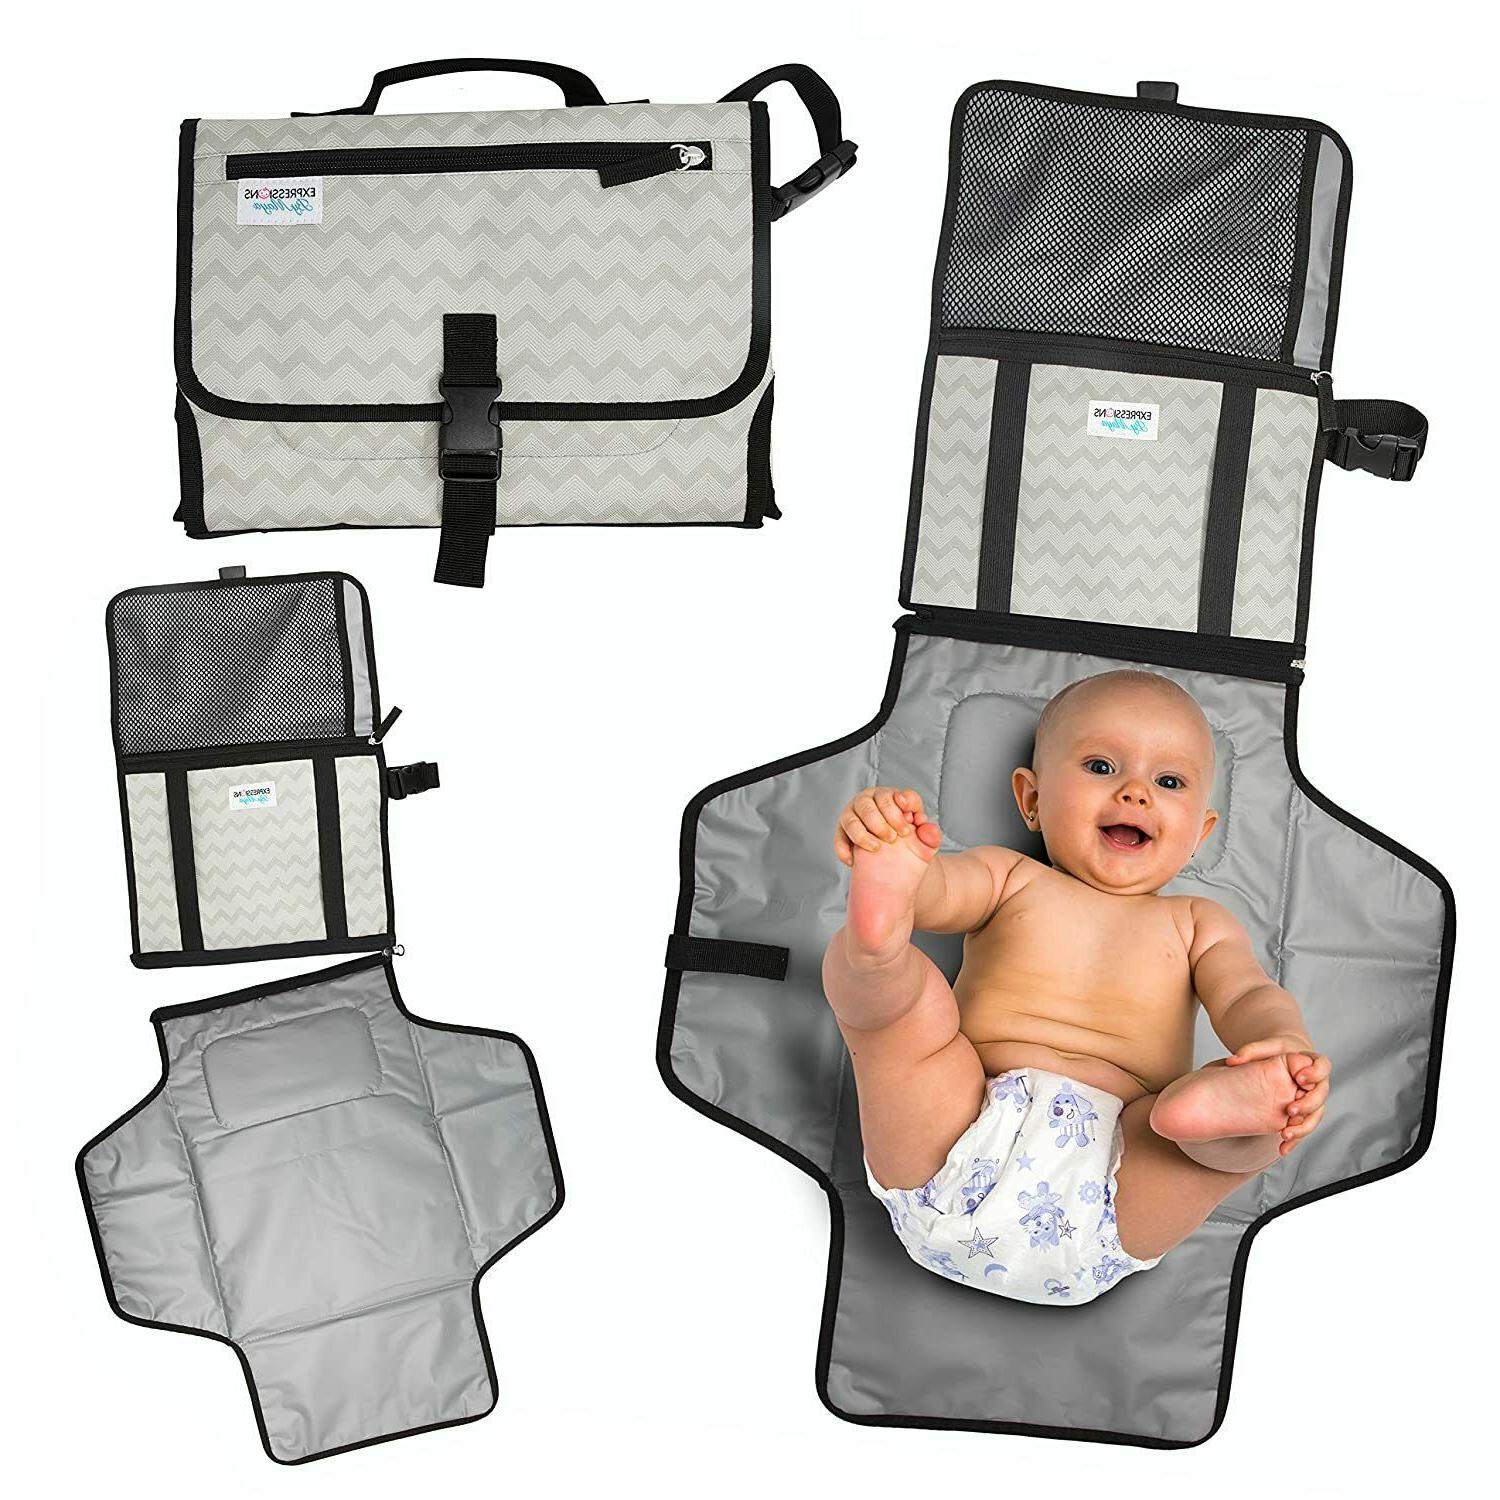 Portable Changing Station Diaper Clutch with Detachable Pad,